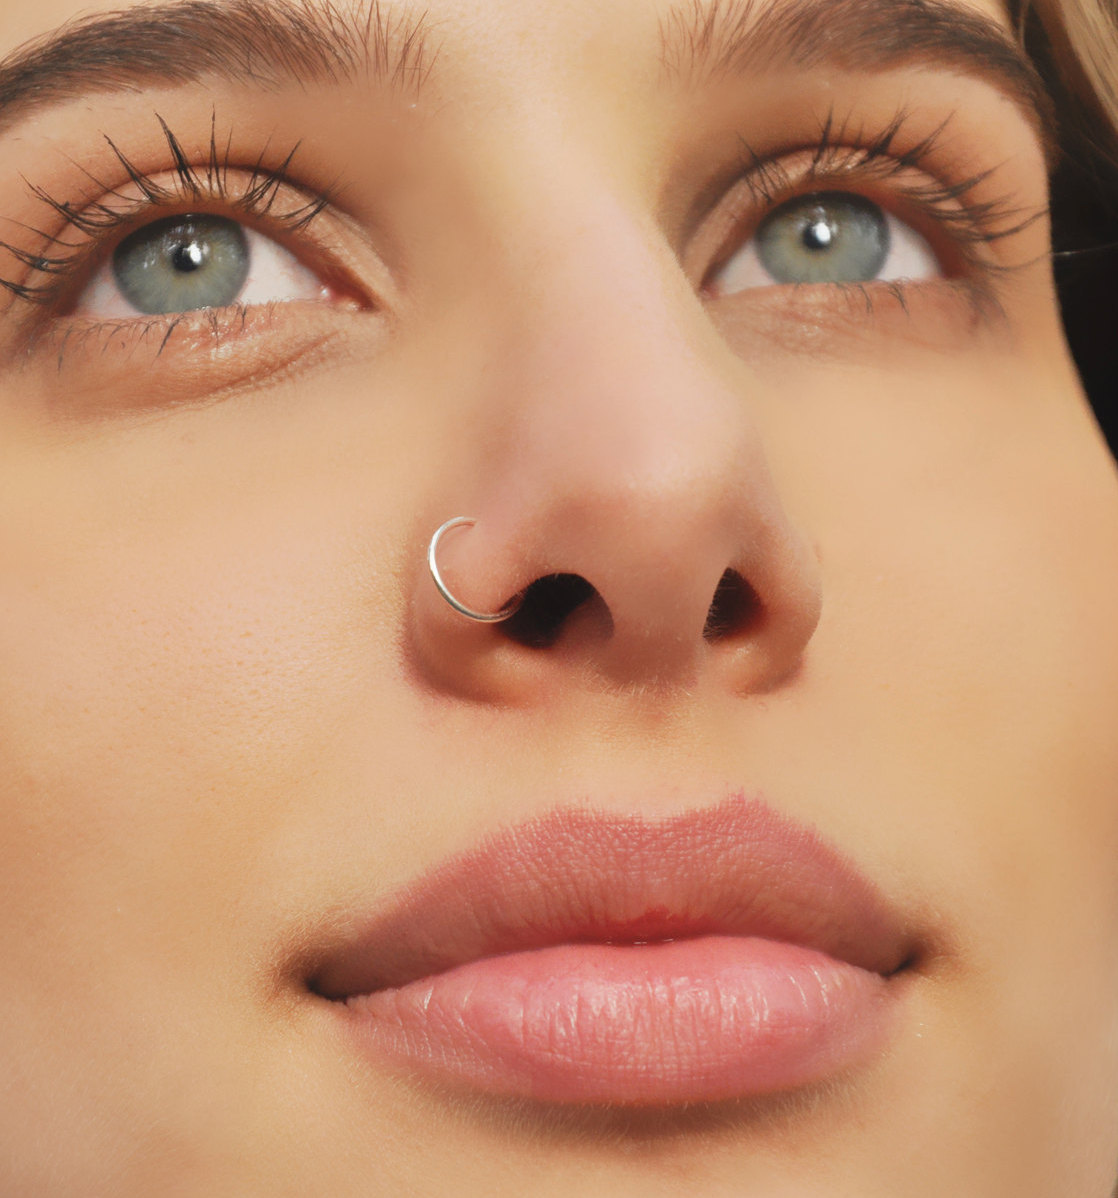 50+ best nose ring piercing images & ideas